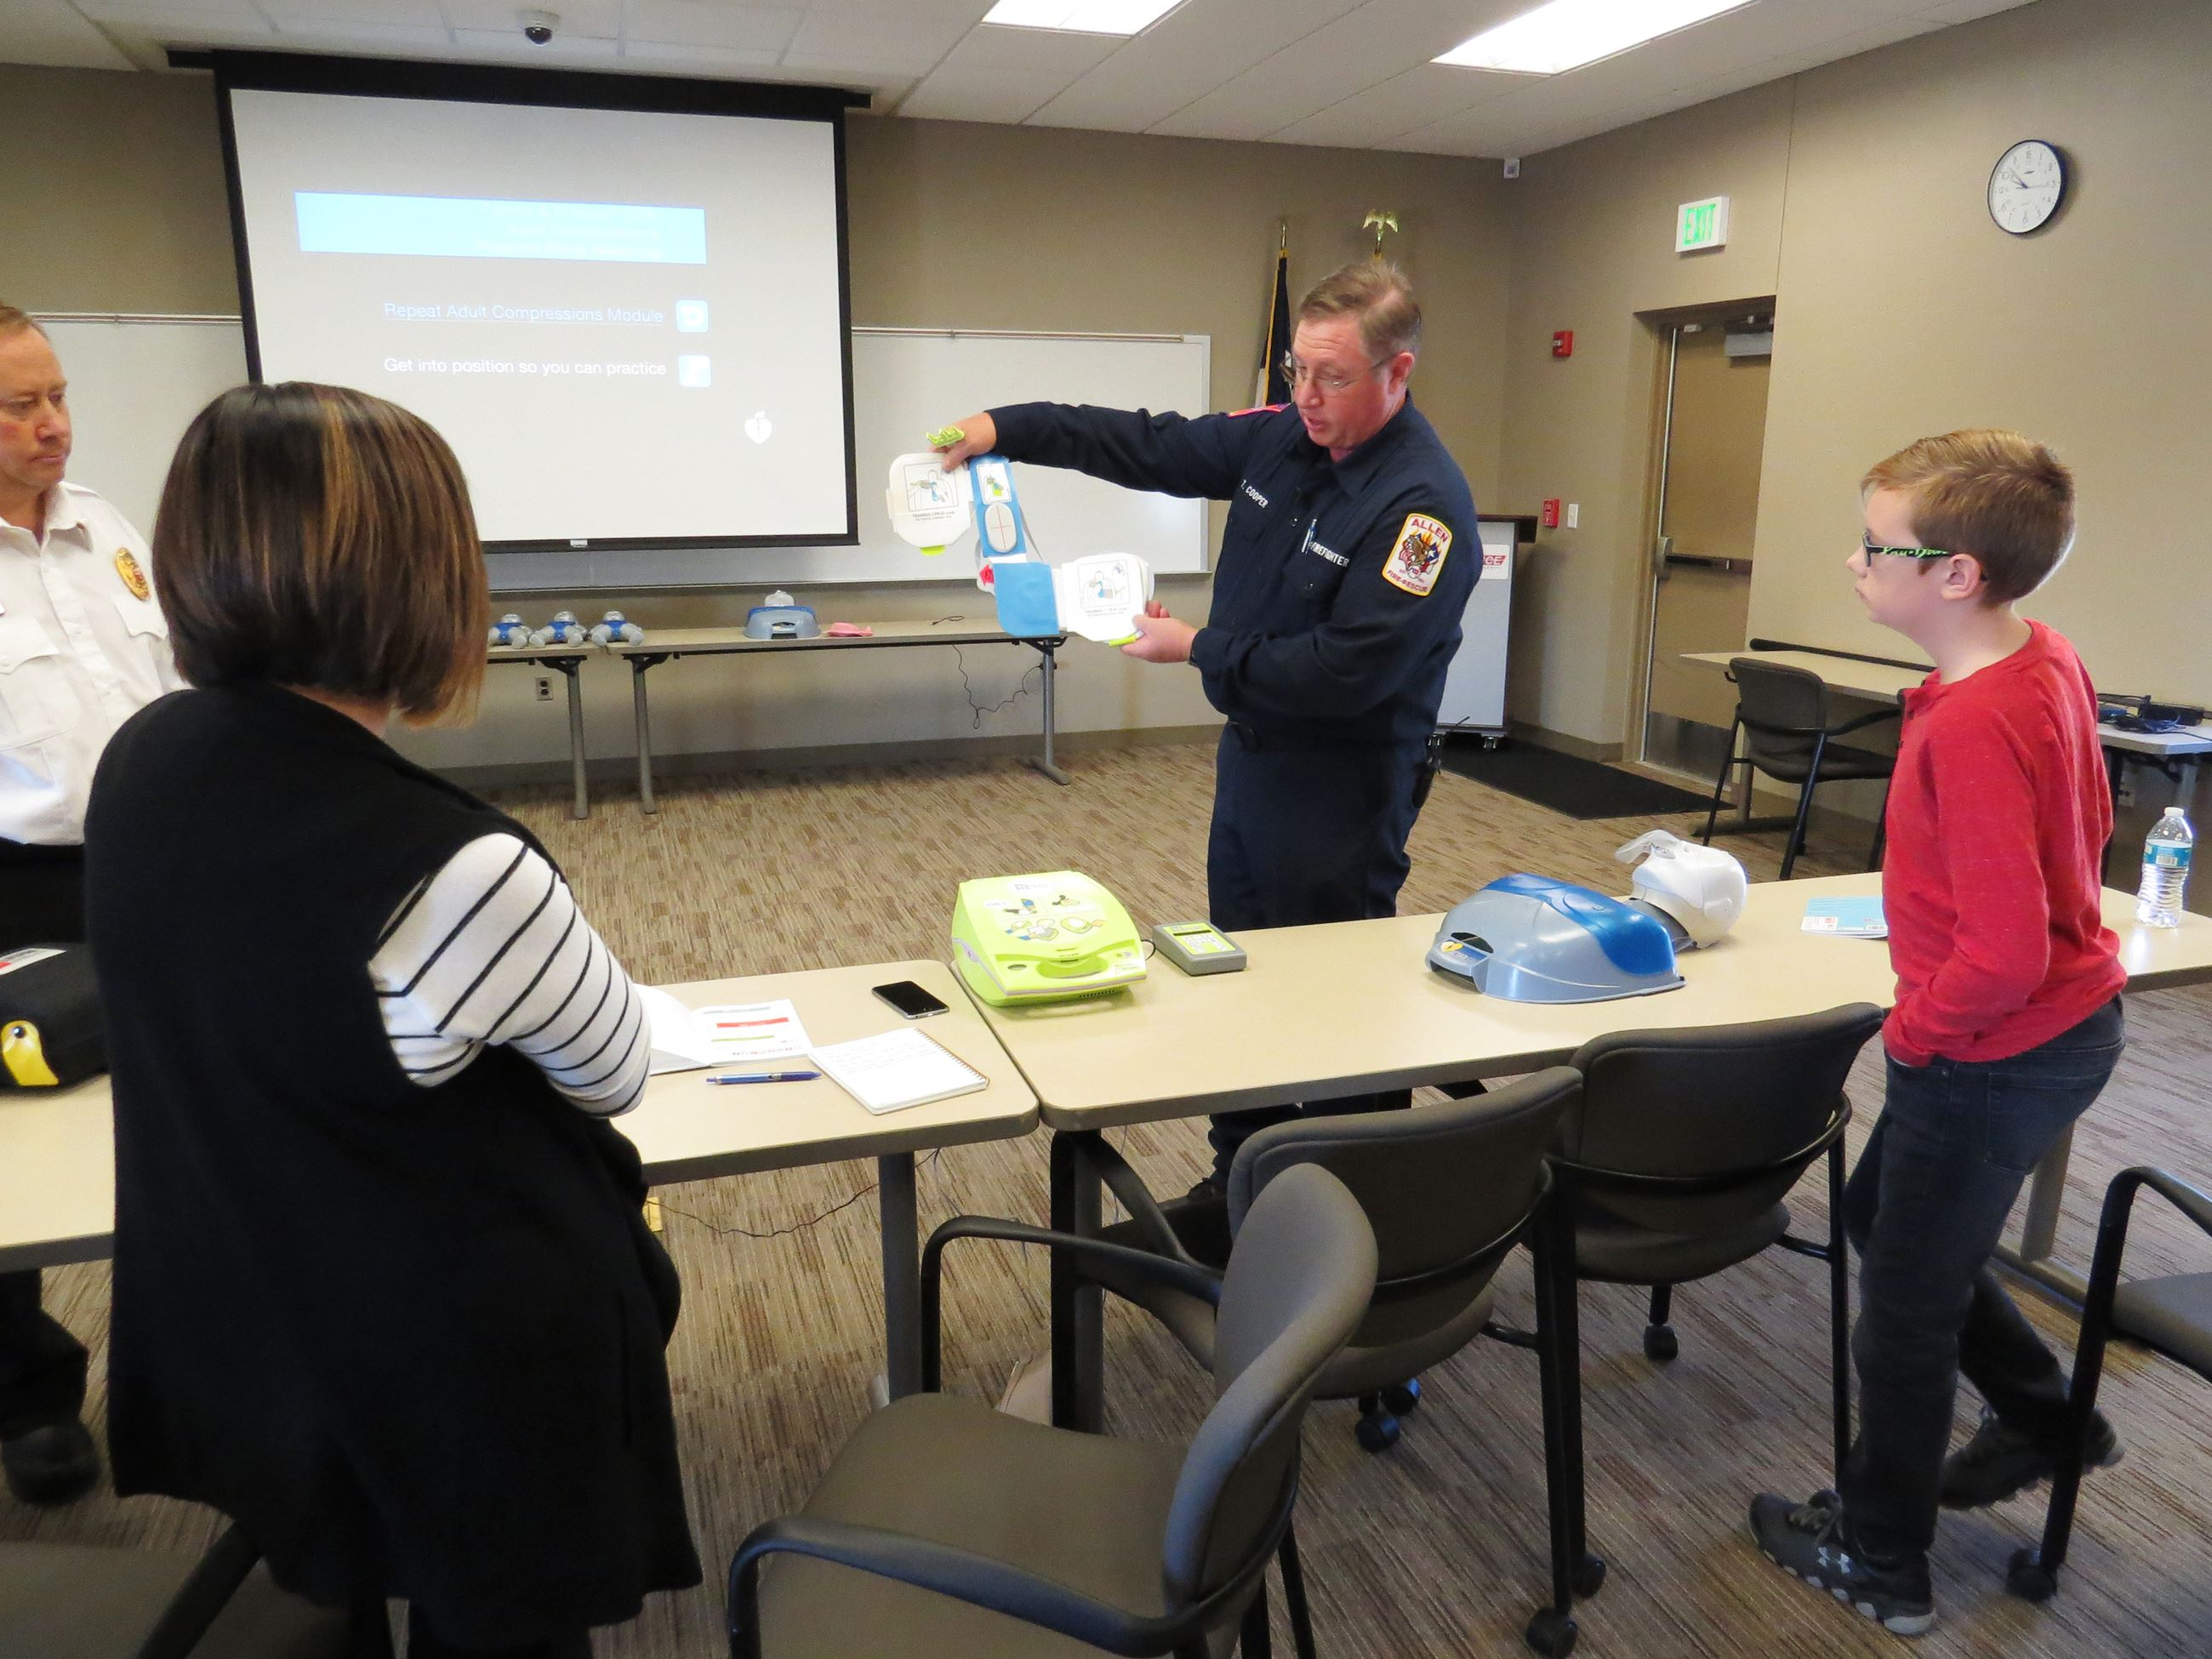 Photo of a firefighter standing in a classroom holding up two AED devices while participants watch.